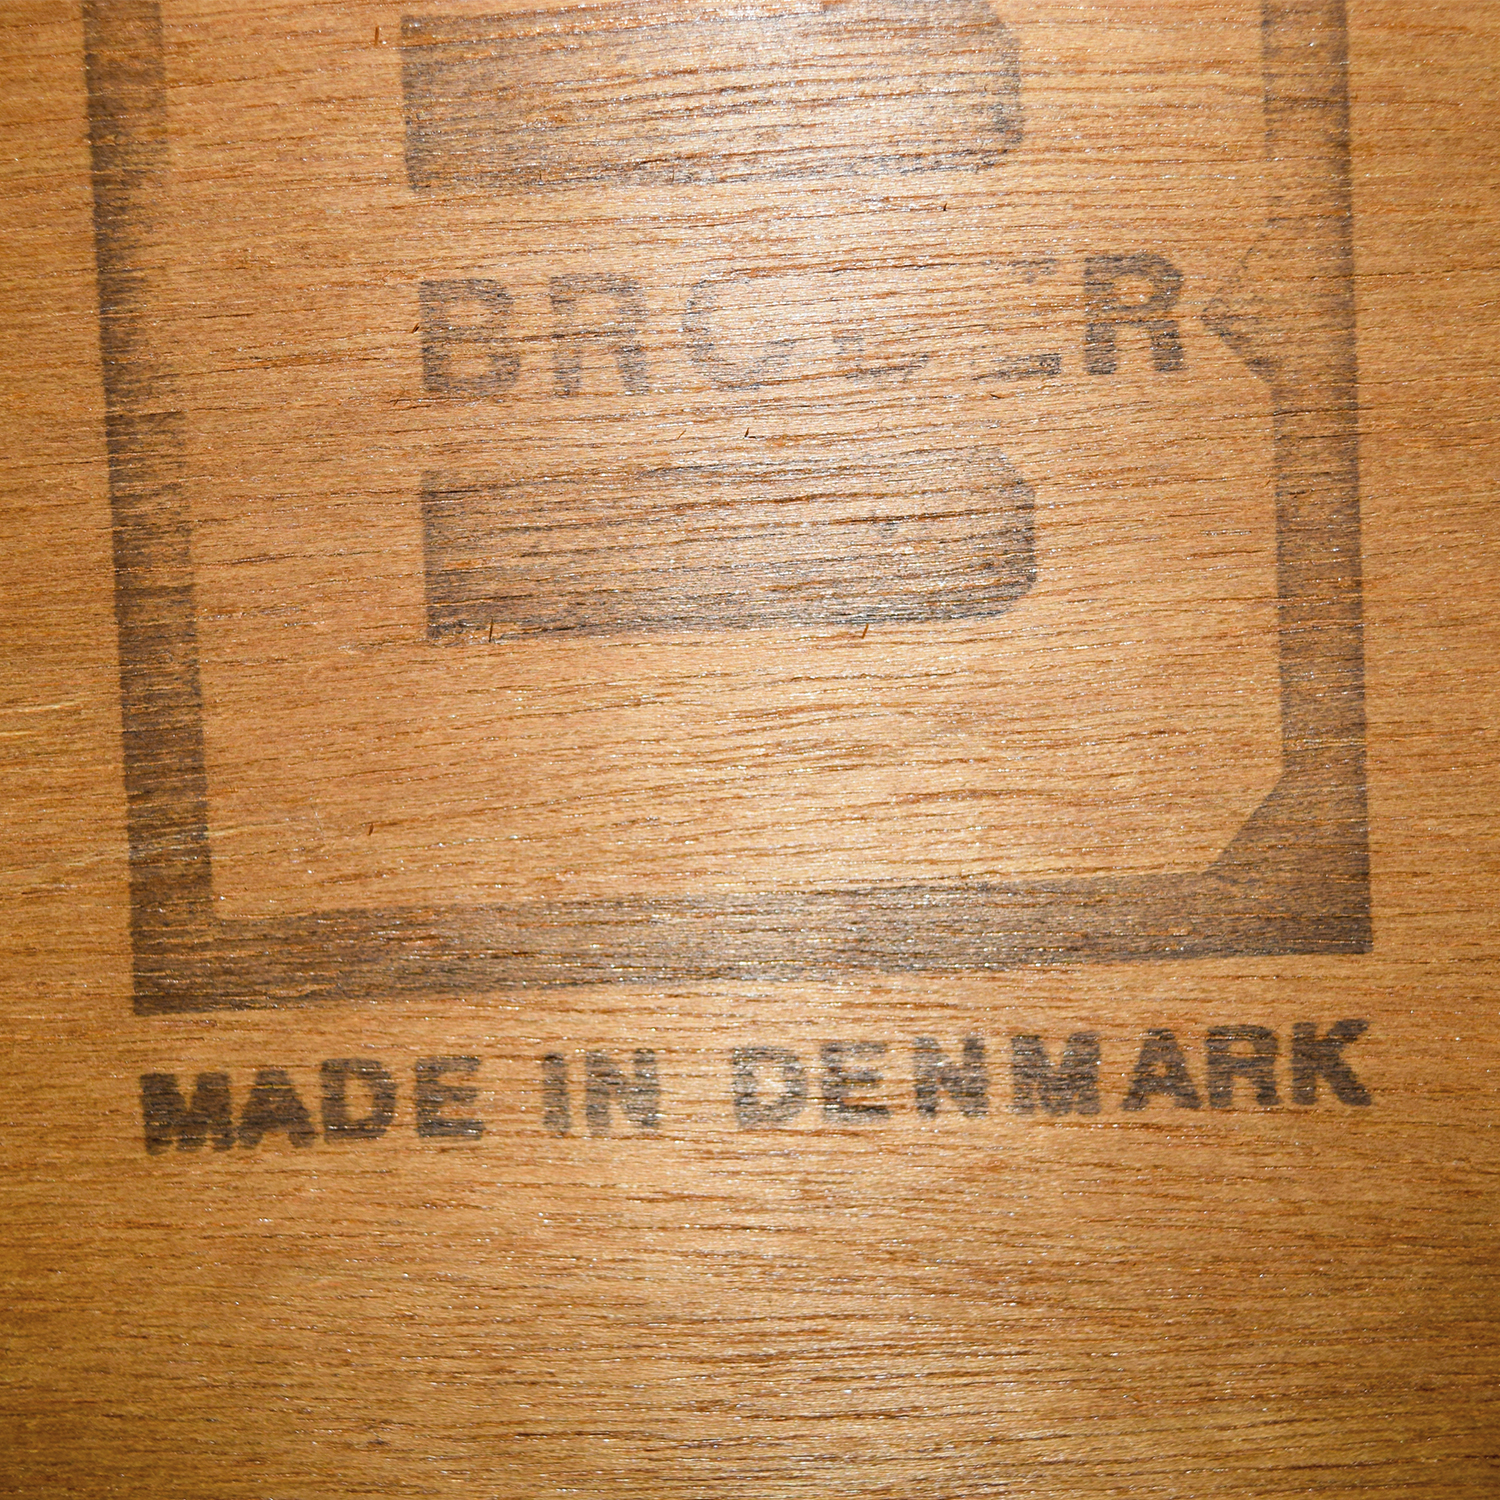 buy Brouer Møbelfabrik from Denmark Three-Drawer Dresser Brouer Møbelfabrik